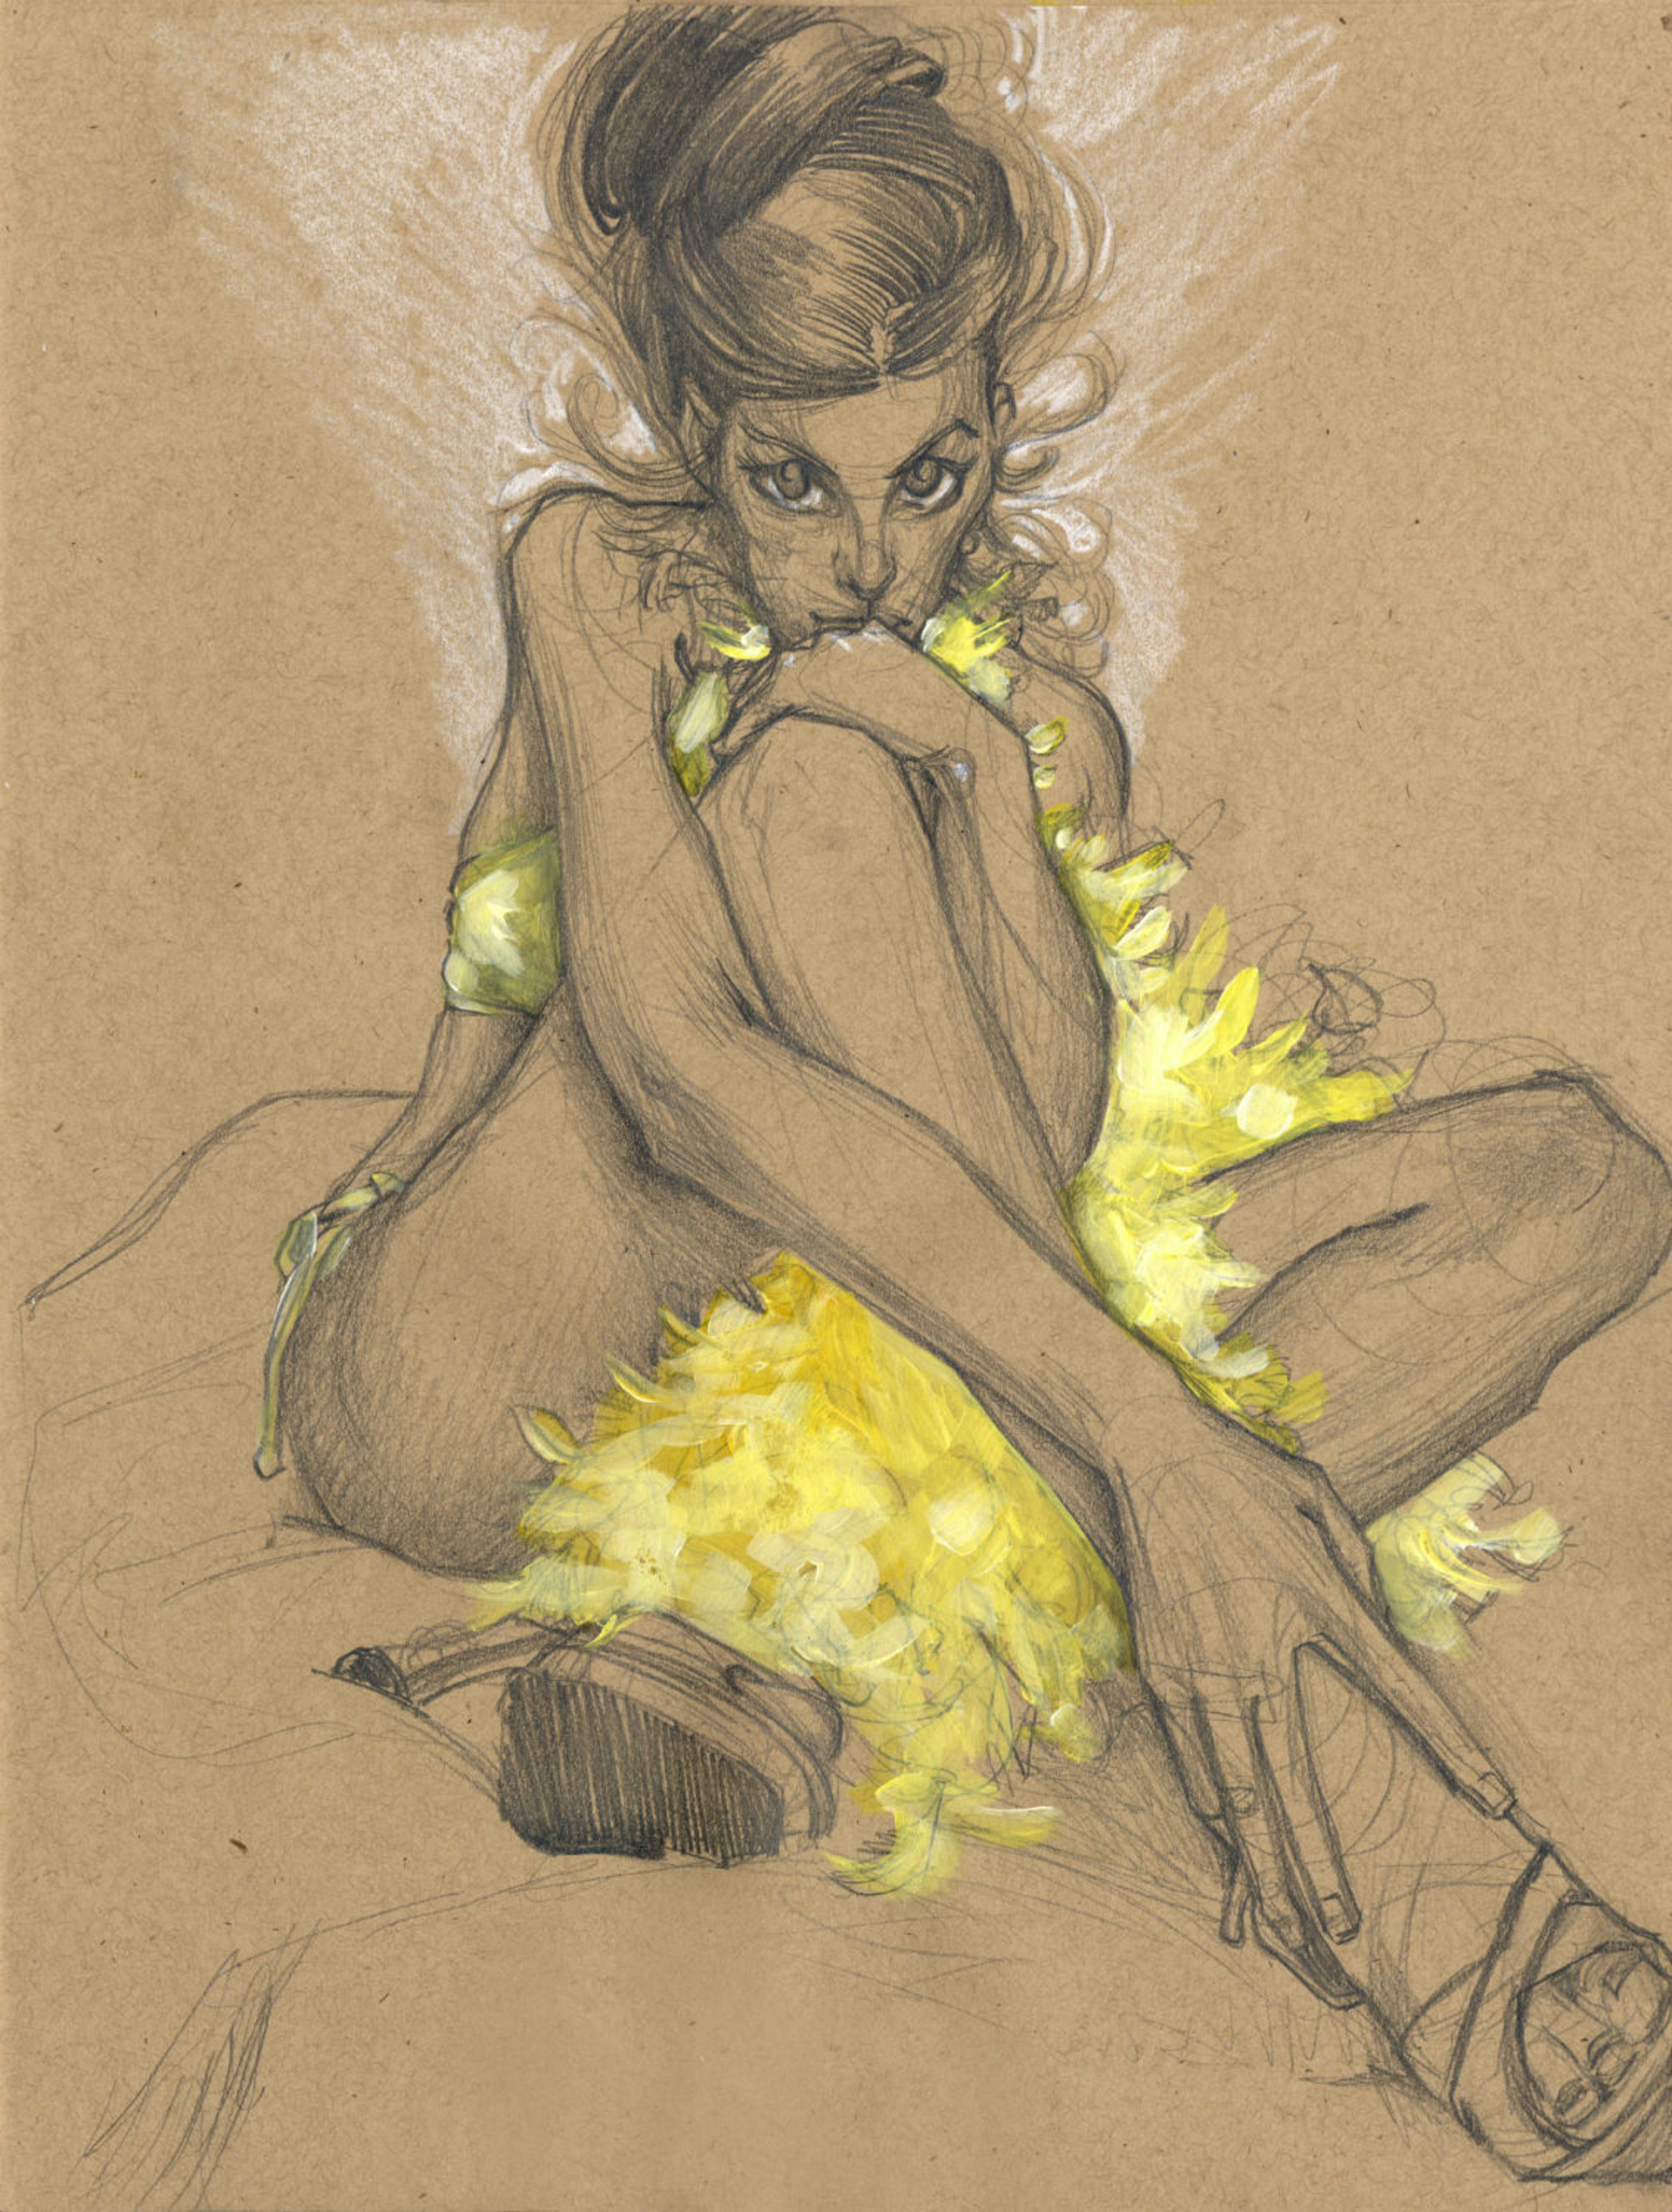 Canary 1 by Kelly Houghton